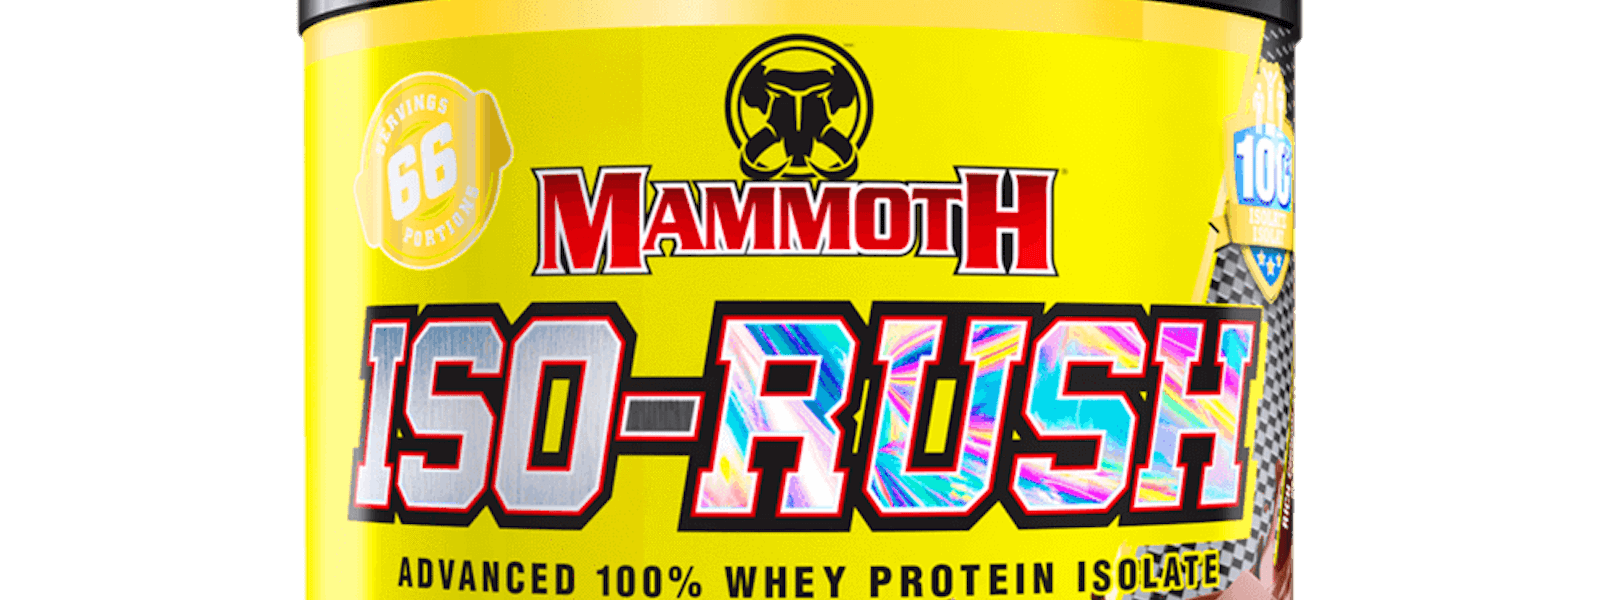 Now Available Mammoth Iso-Rush